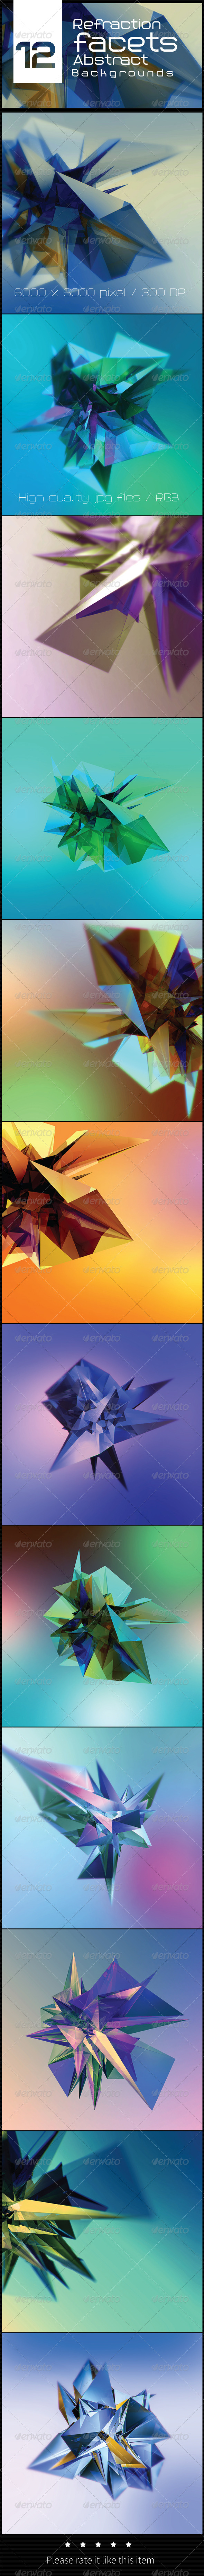 GraphicRiver 12 Refraction Facets Abstract Backgrounds 8064507